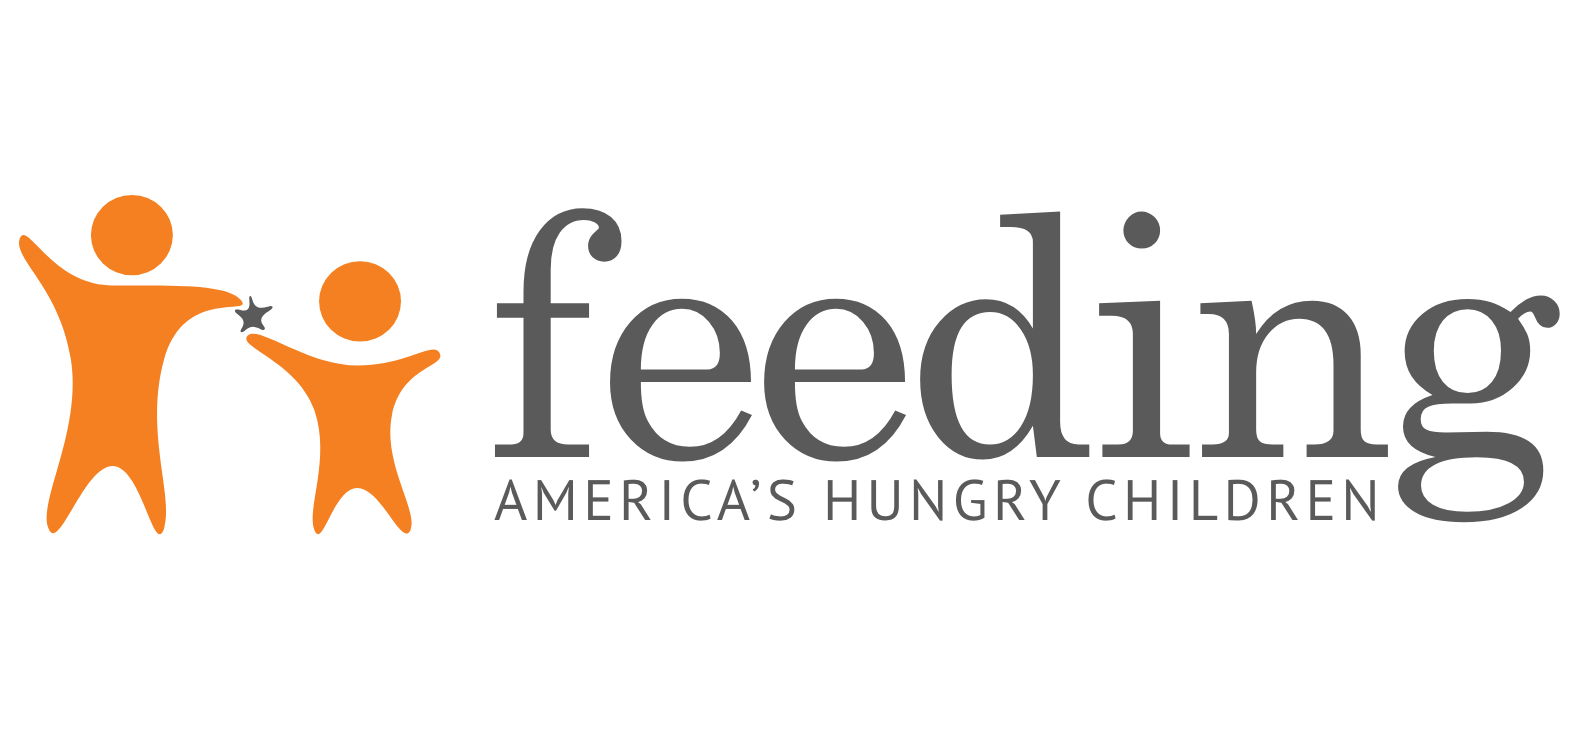 Feeding America's Hungry Children